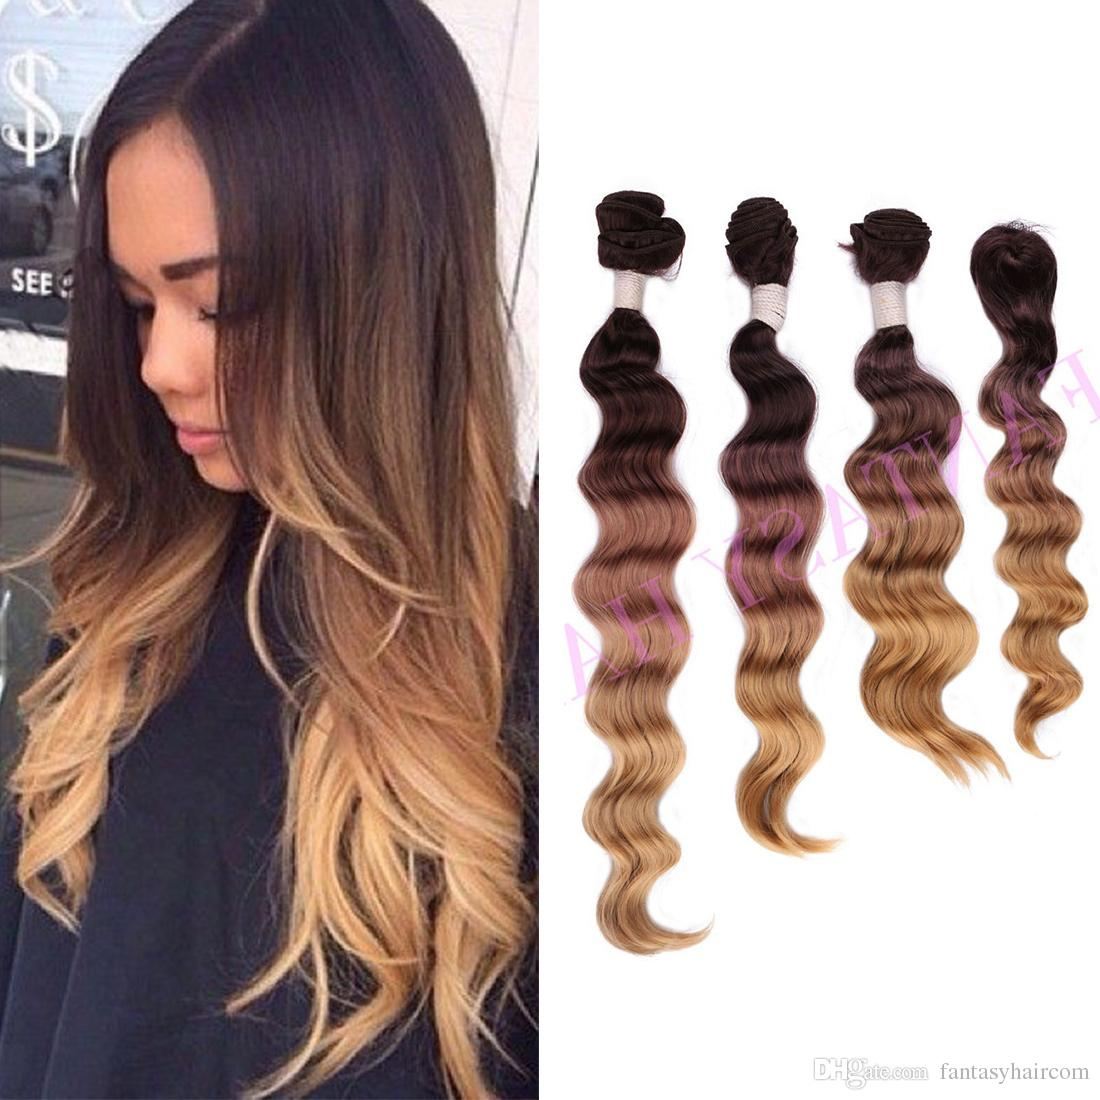 Heat Resistant No Shedding Light Brown Ombre Brazilian Loose Wave Weave  With Closure Synthetic Hair Extensions Weft Pieces Weaving P09219 Black  Hair Weave ... Home Design Ideas